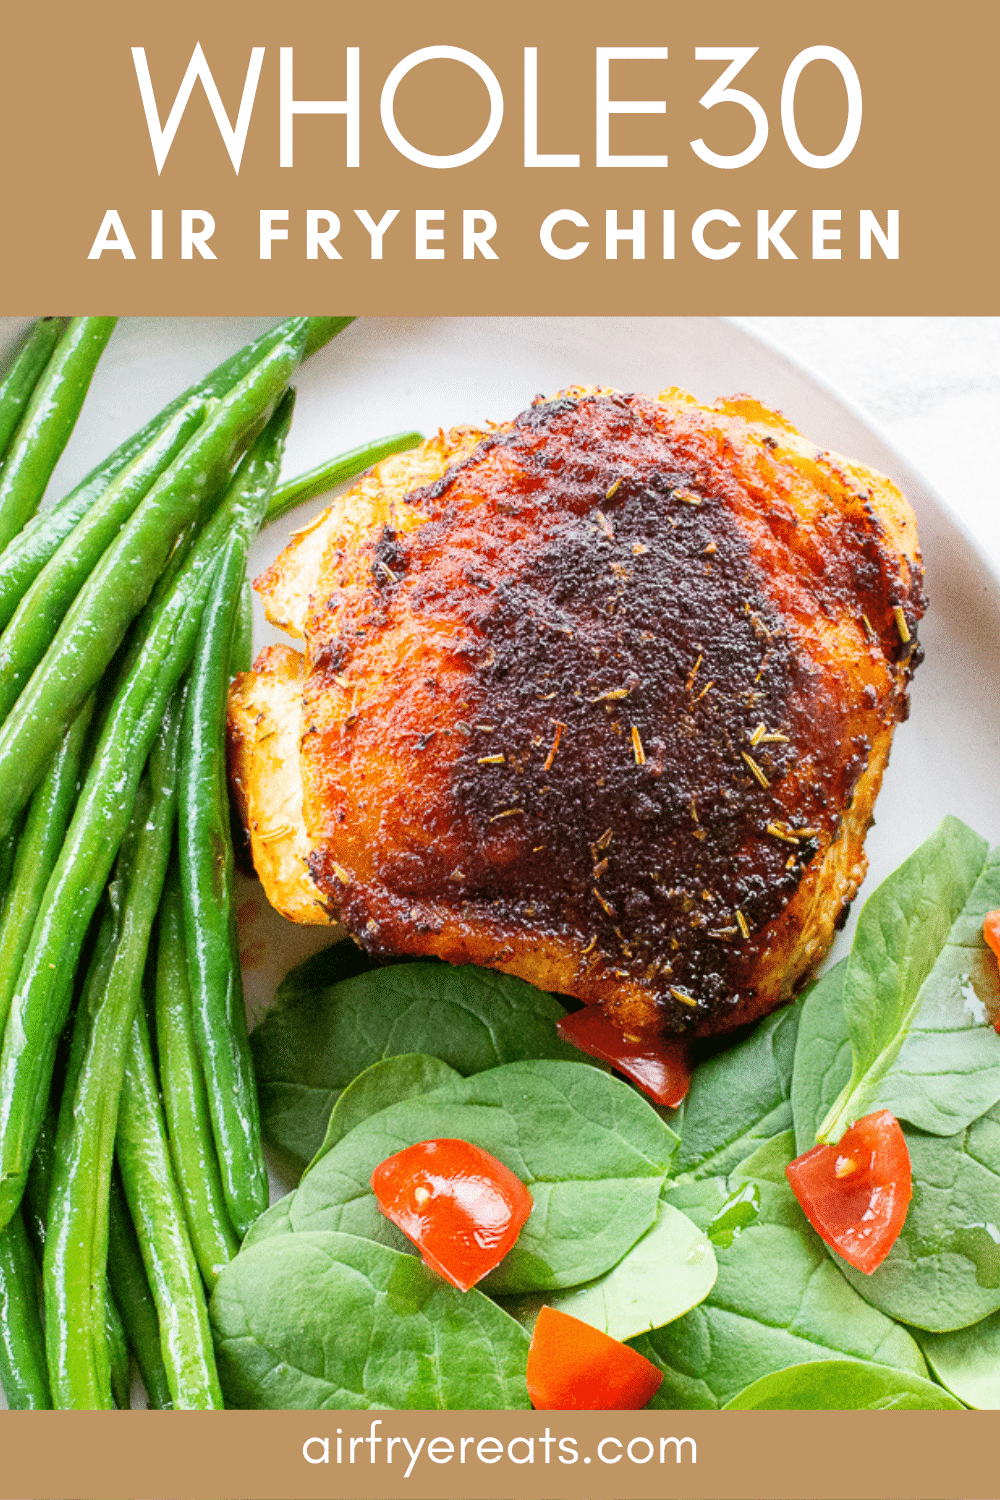 These Air Fryer Chicken Thighs are moist inside and crispy outside! This 30-minute meal is a family favorite made from simple pantry staples. #airfryerchickenthighs #chickenthighs #italianchickenthighs via @vegetarianmamma